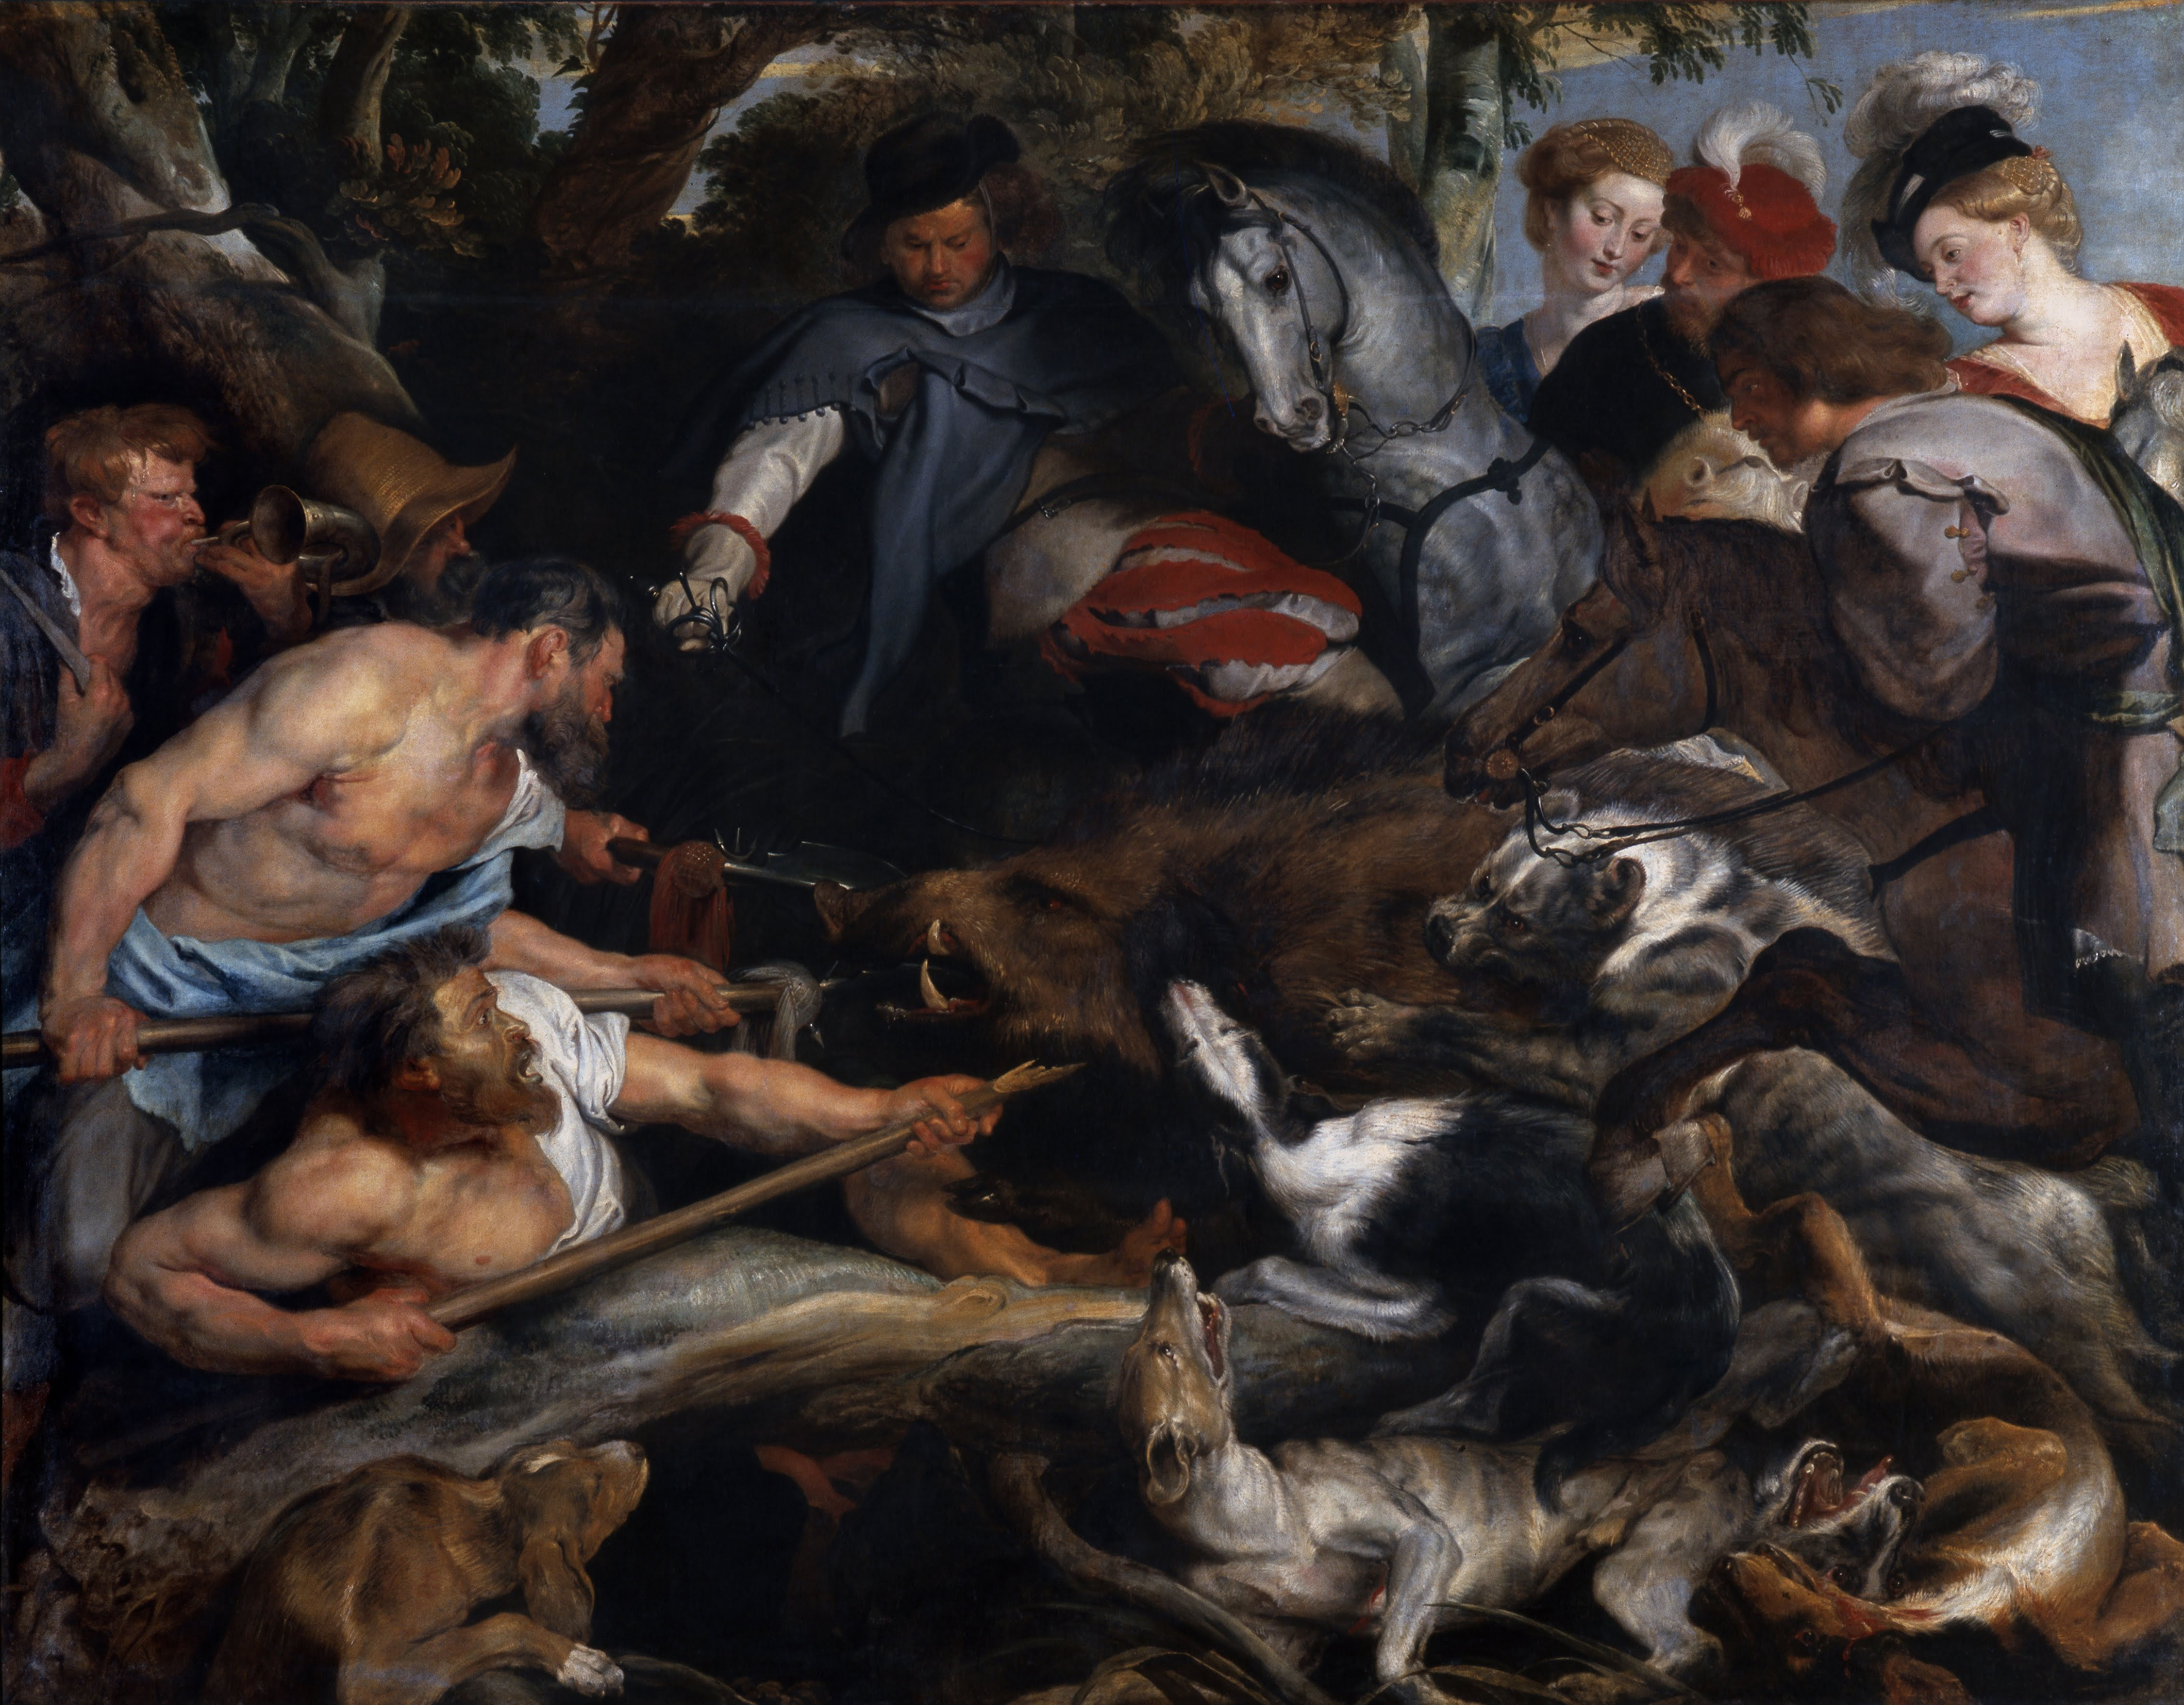 From the Archives: Peter Paul Rubens's 'New, Radiant, and Fresh' Style, in 1936